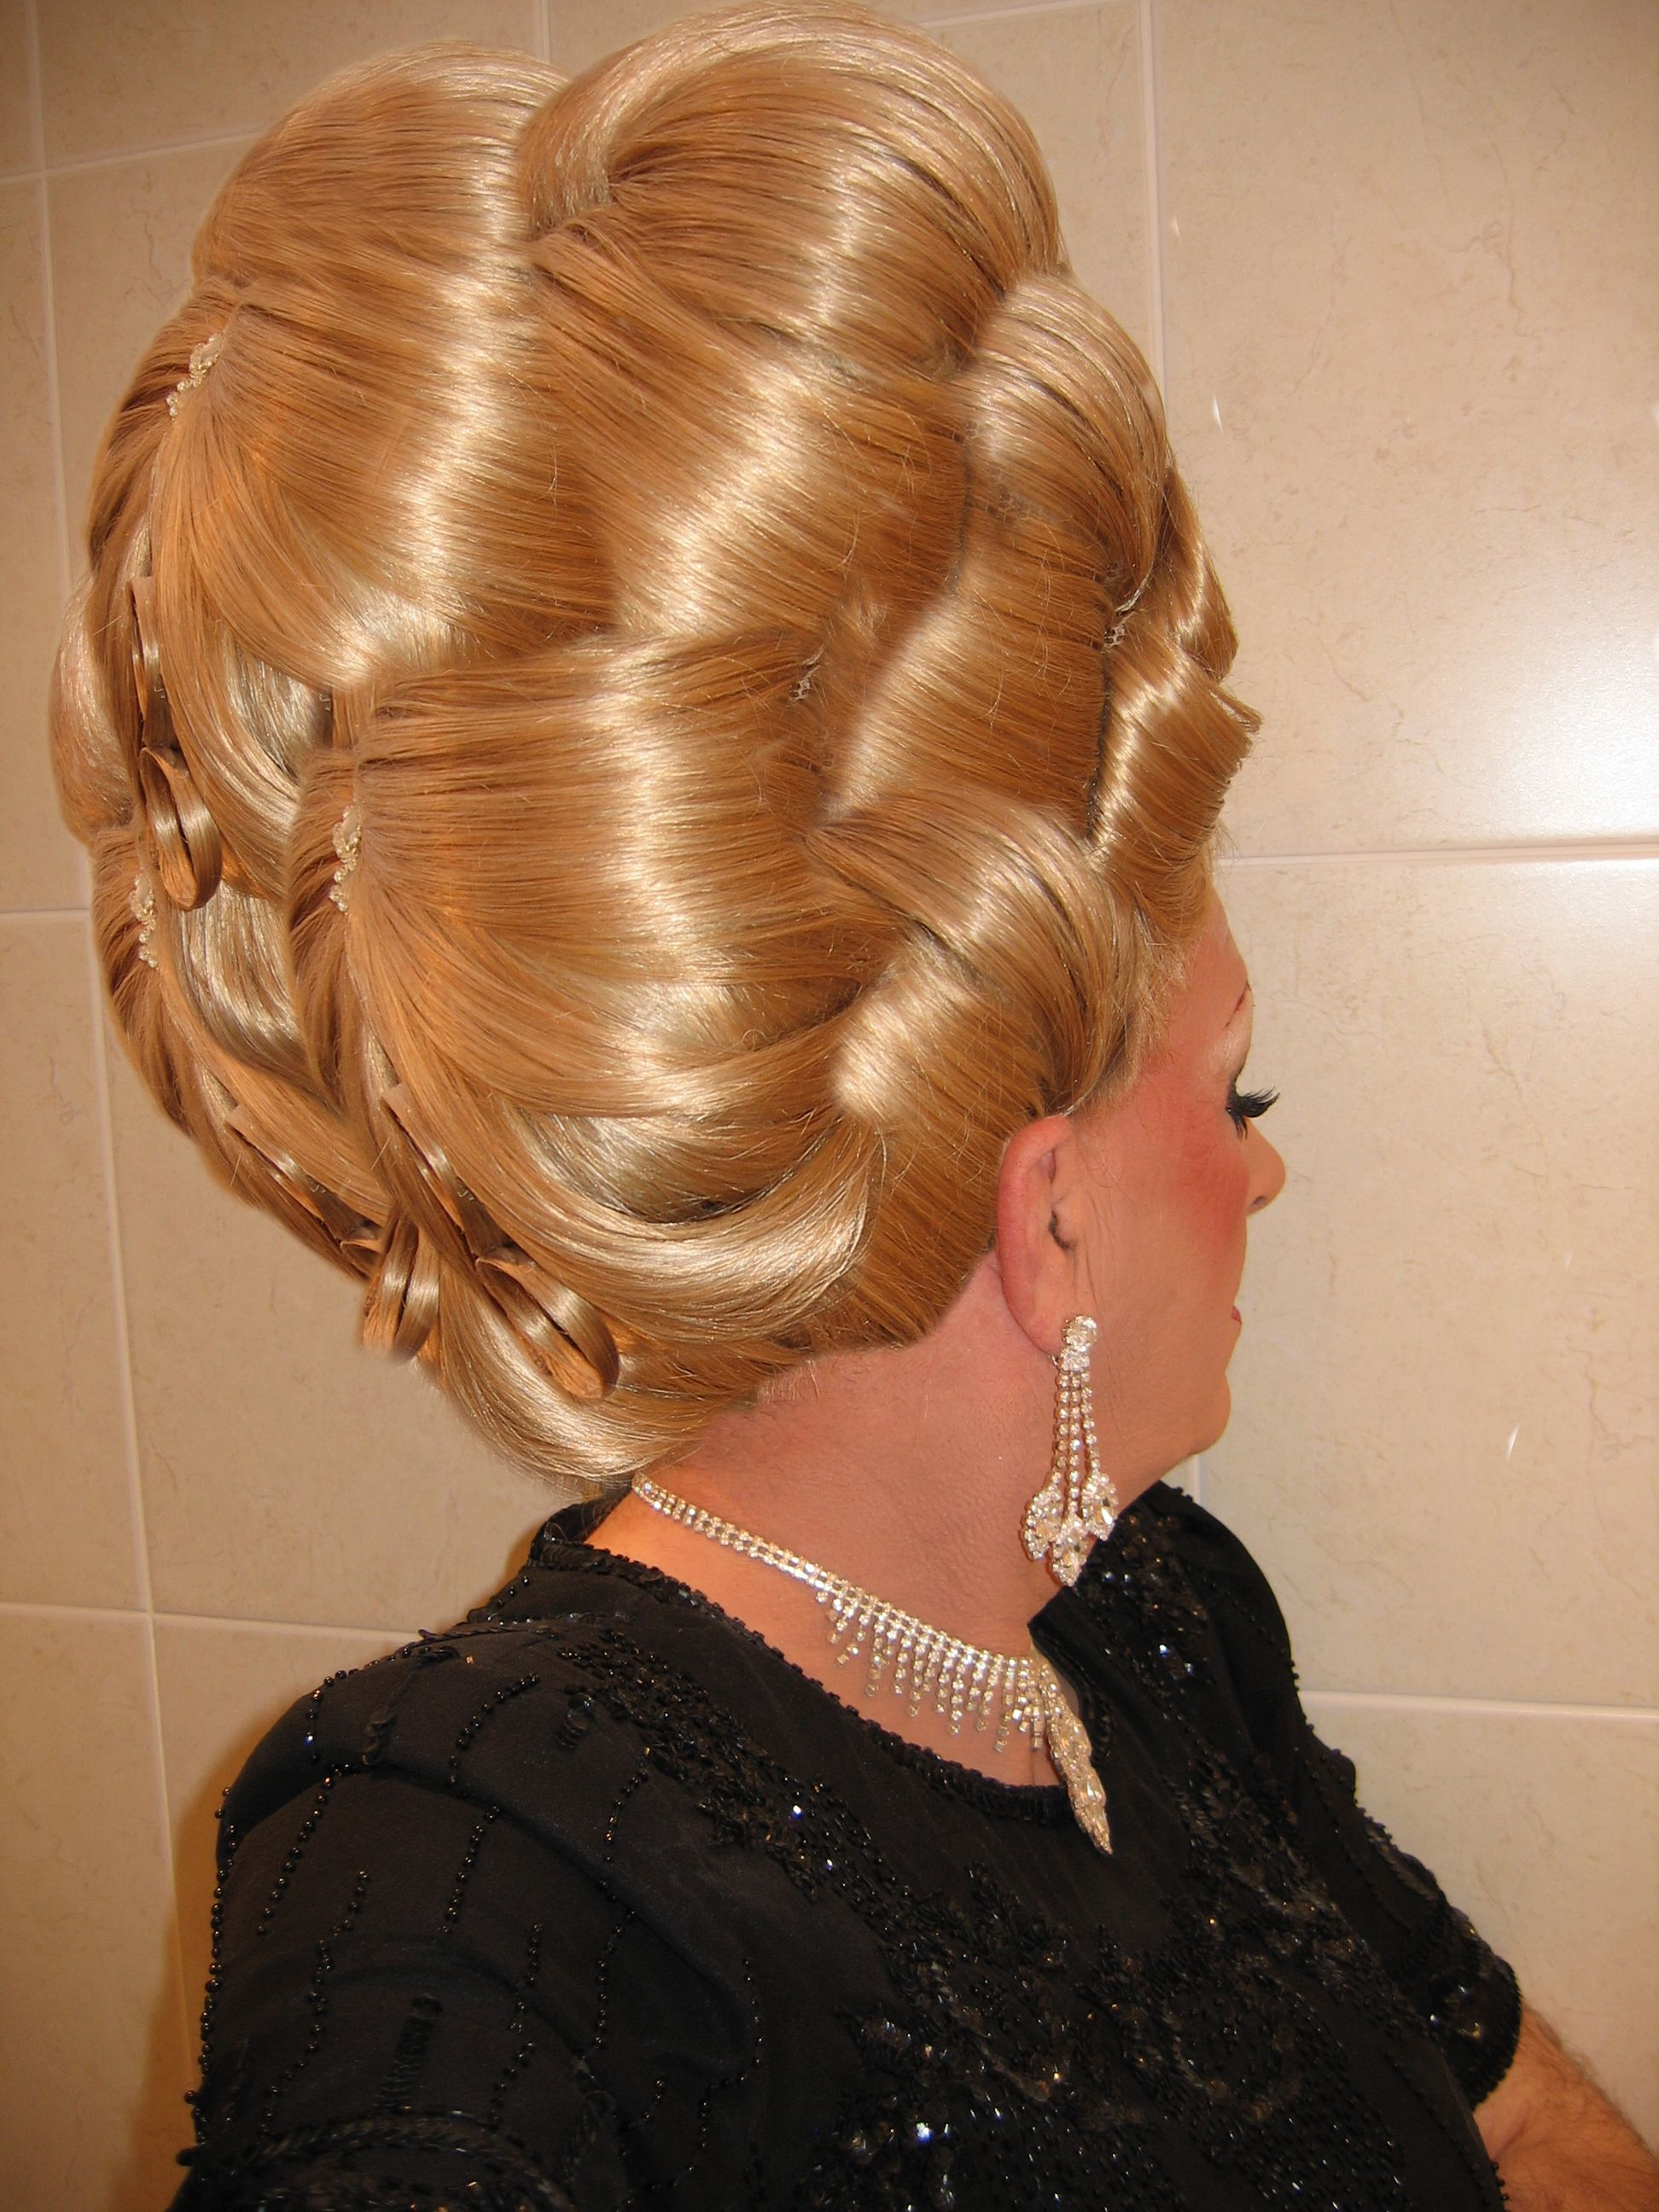 Pin by Ladychacha on Capillaires Pinterest Hair Hair styles and